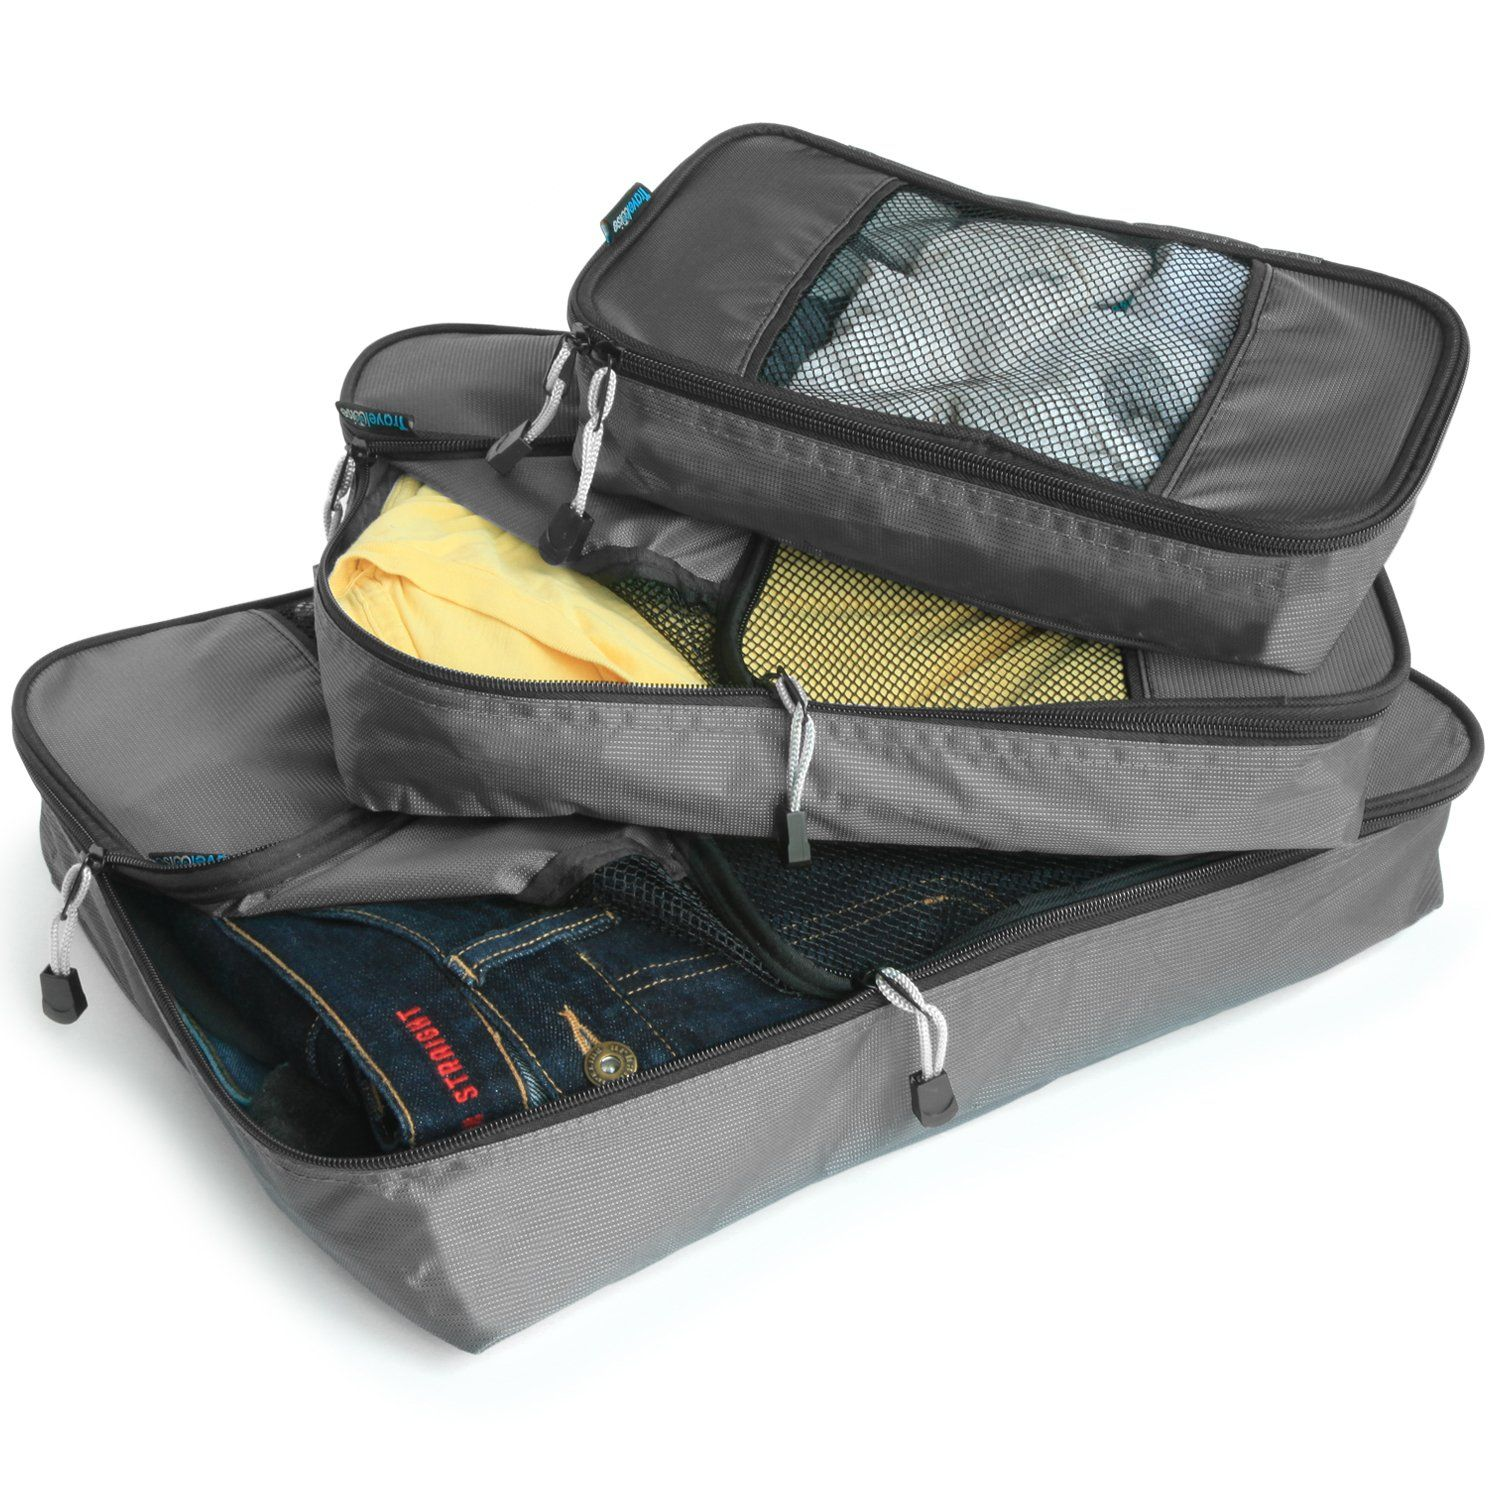 Durable 3 Piece Weekender Luggage Organizer Set TravelWise Packing Cube System